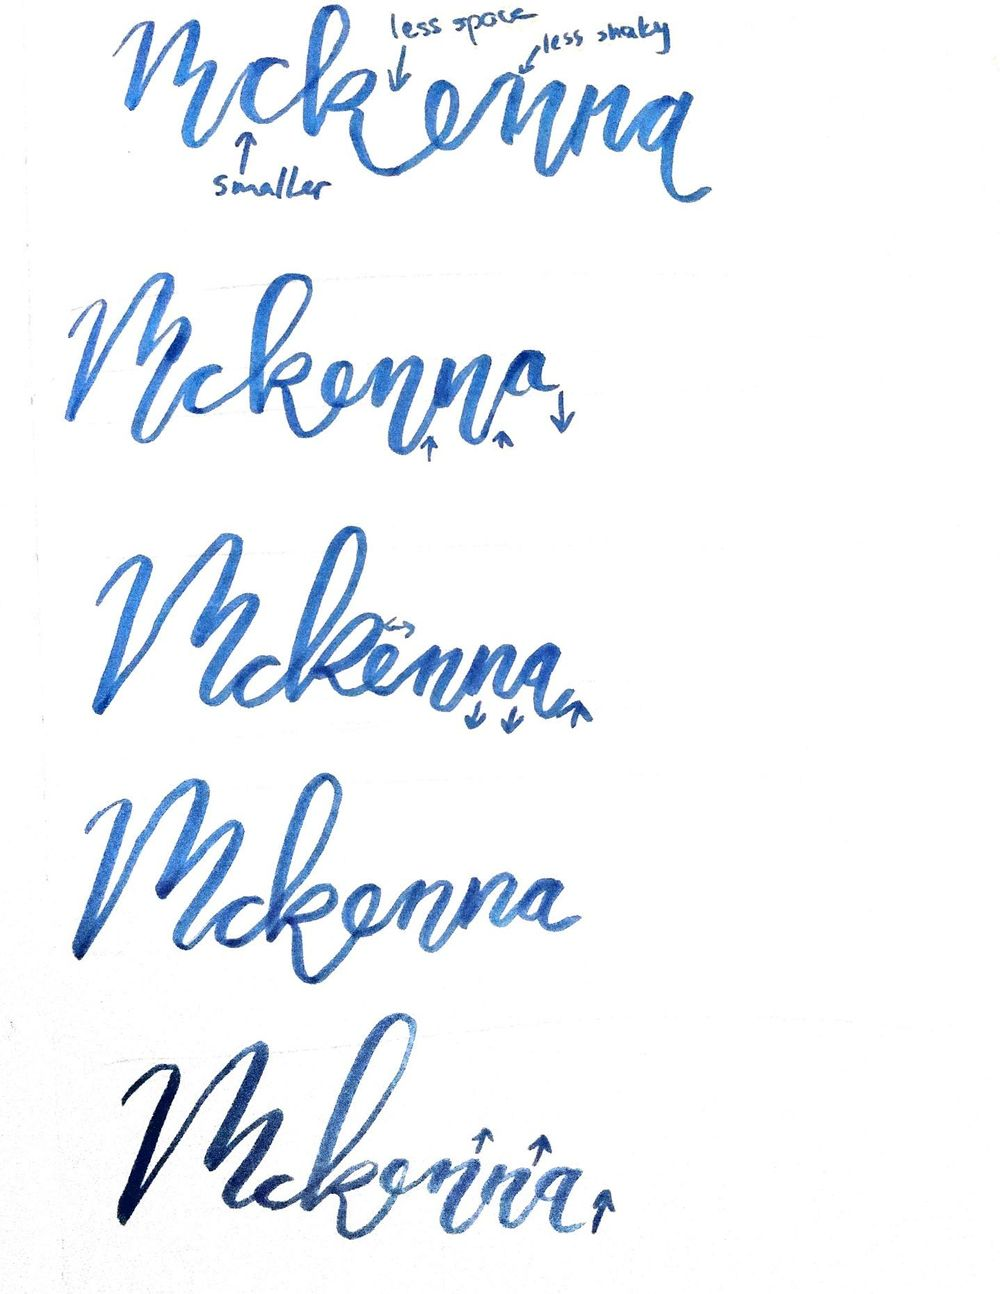 McKenna in bounce lettering - image 2 - student project